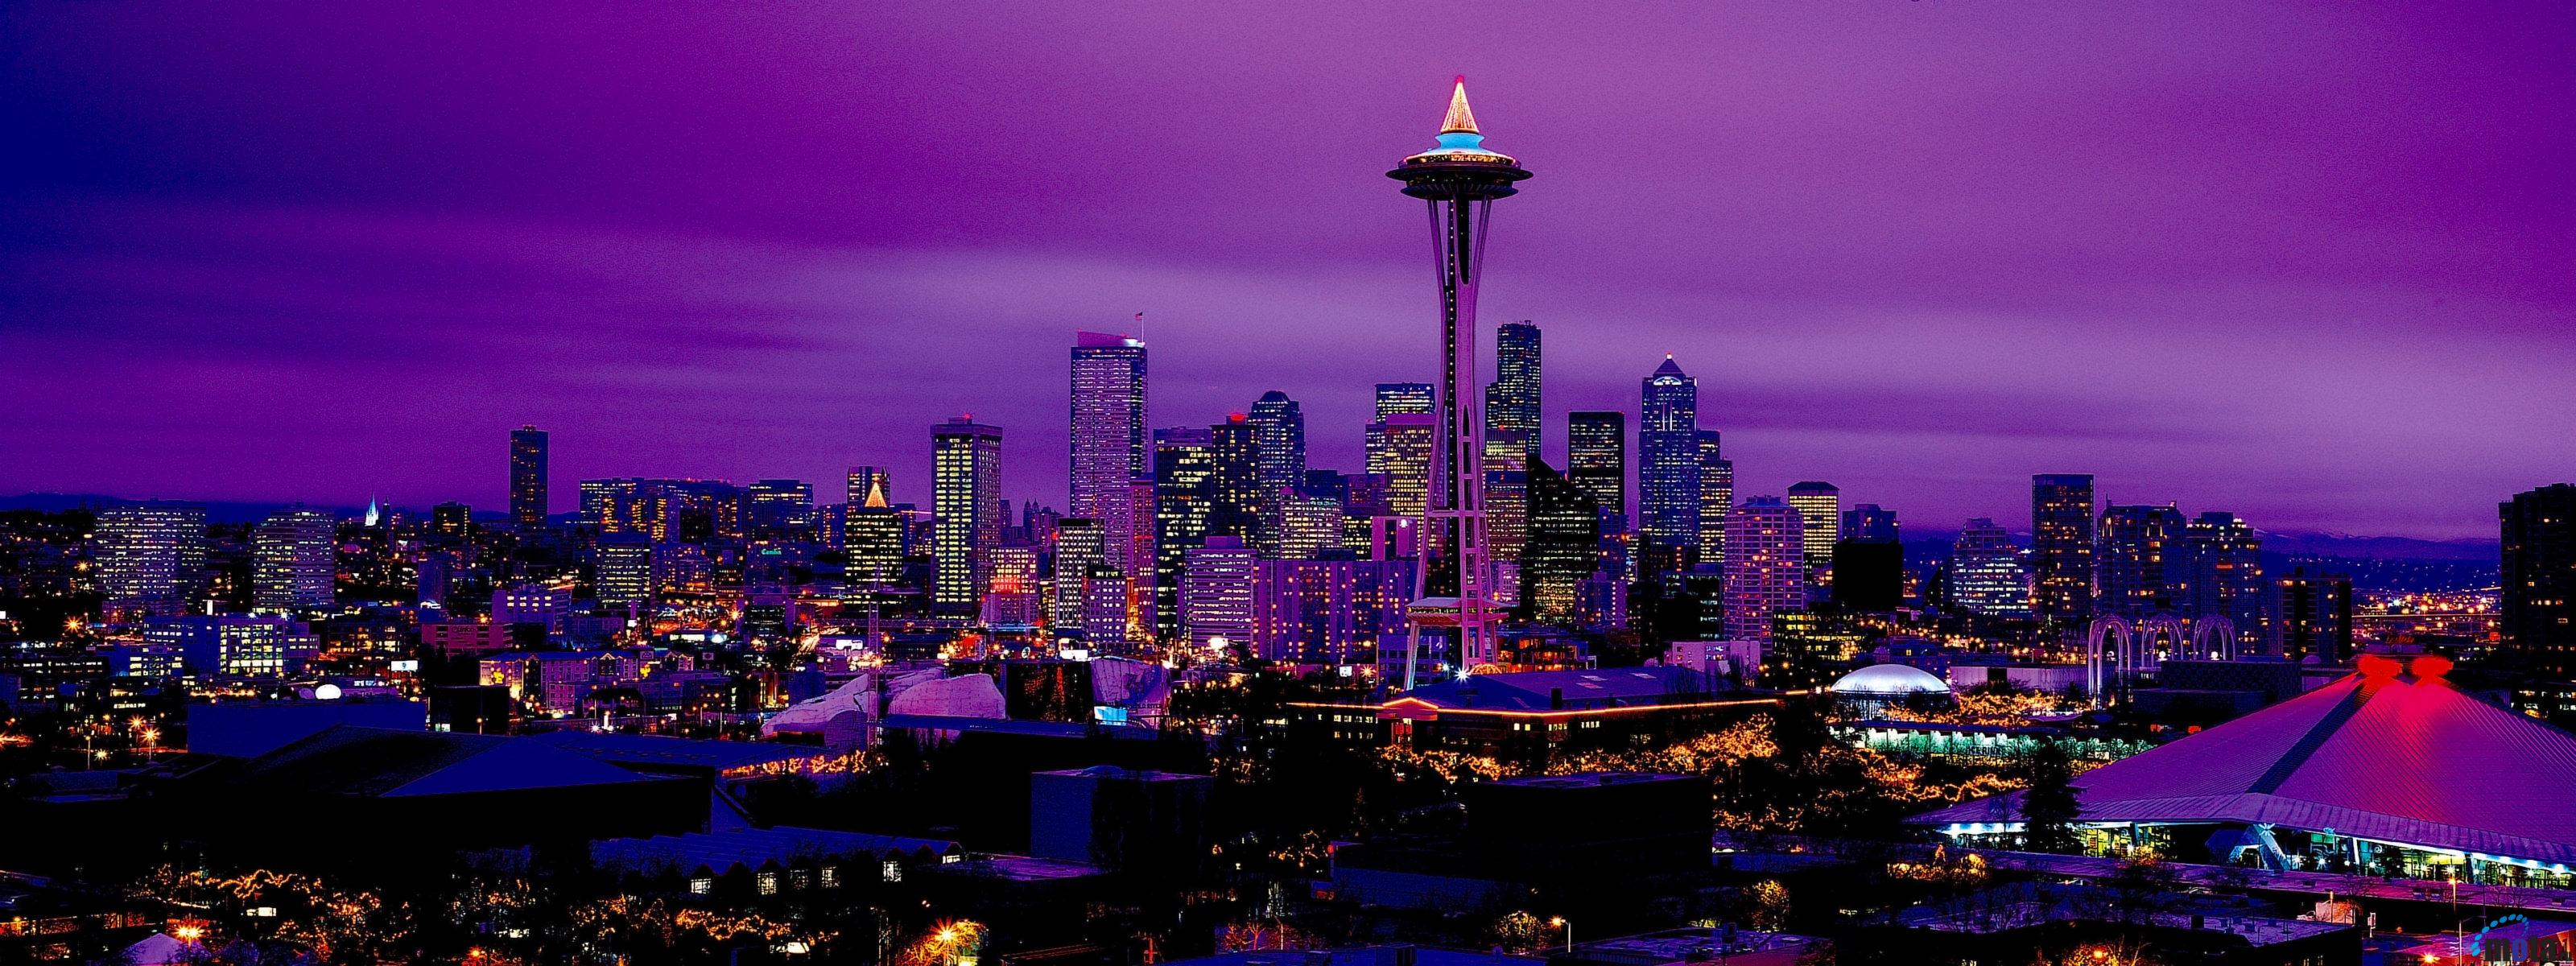 Download Wallpaper Seattle by night Washington USA 3200 x 1200 Dual 3200x1200